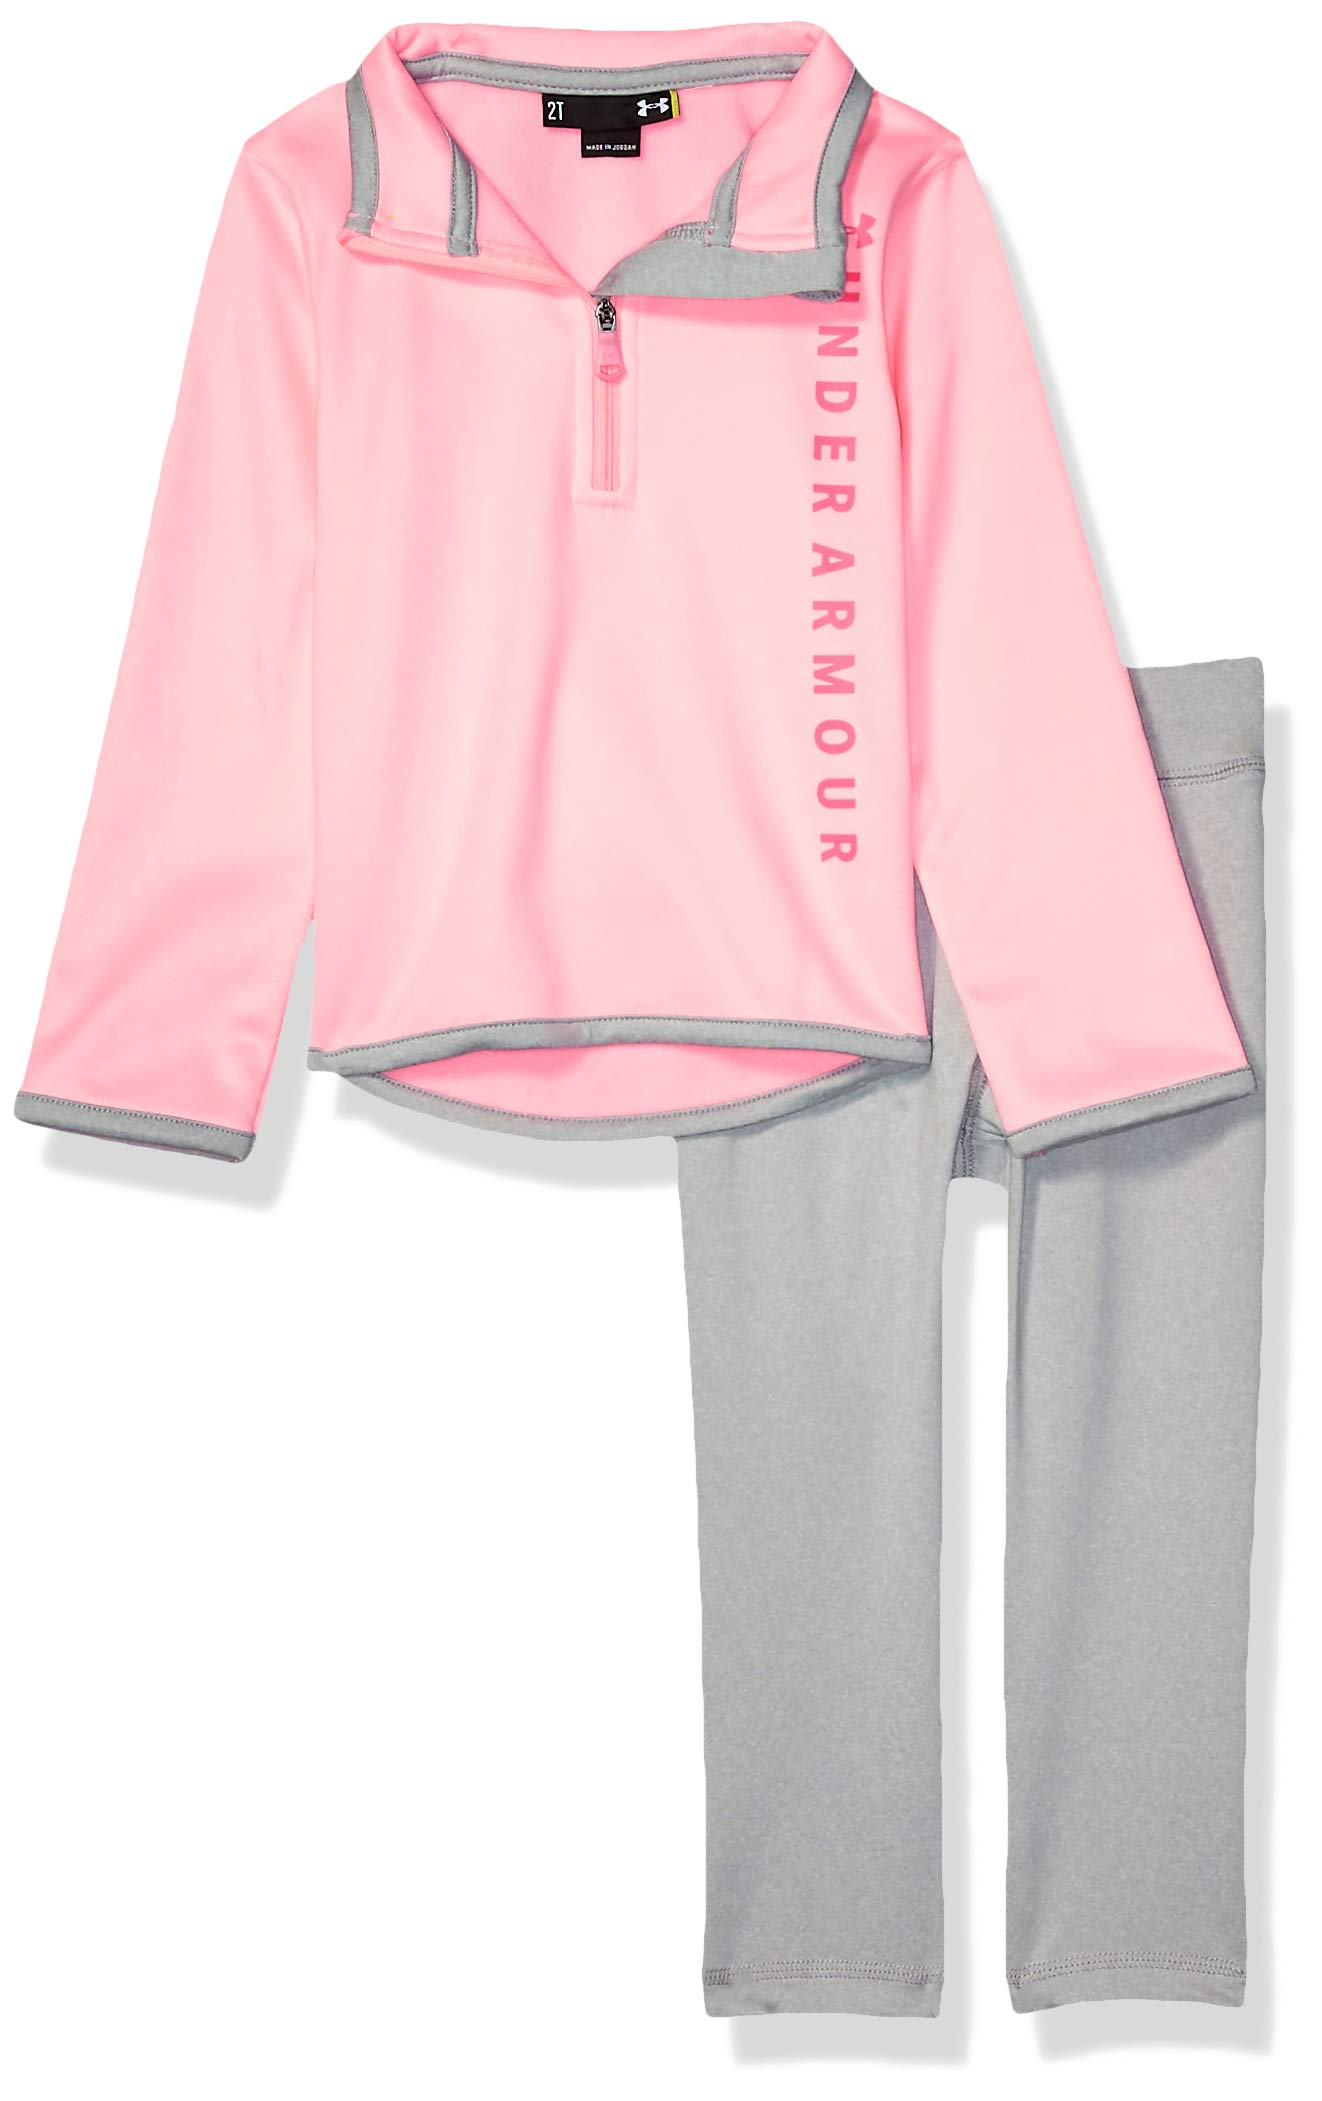 Under Armour Girls' Track Jacket and Pant Set